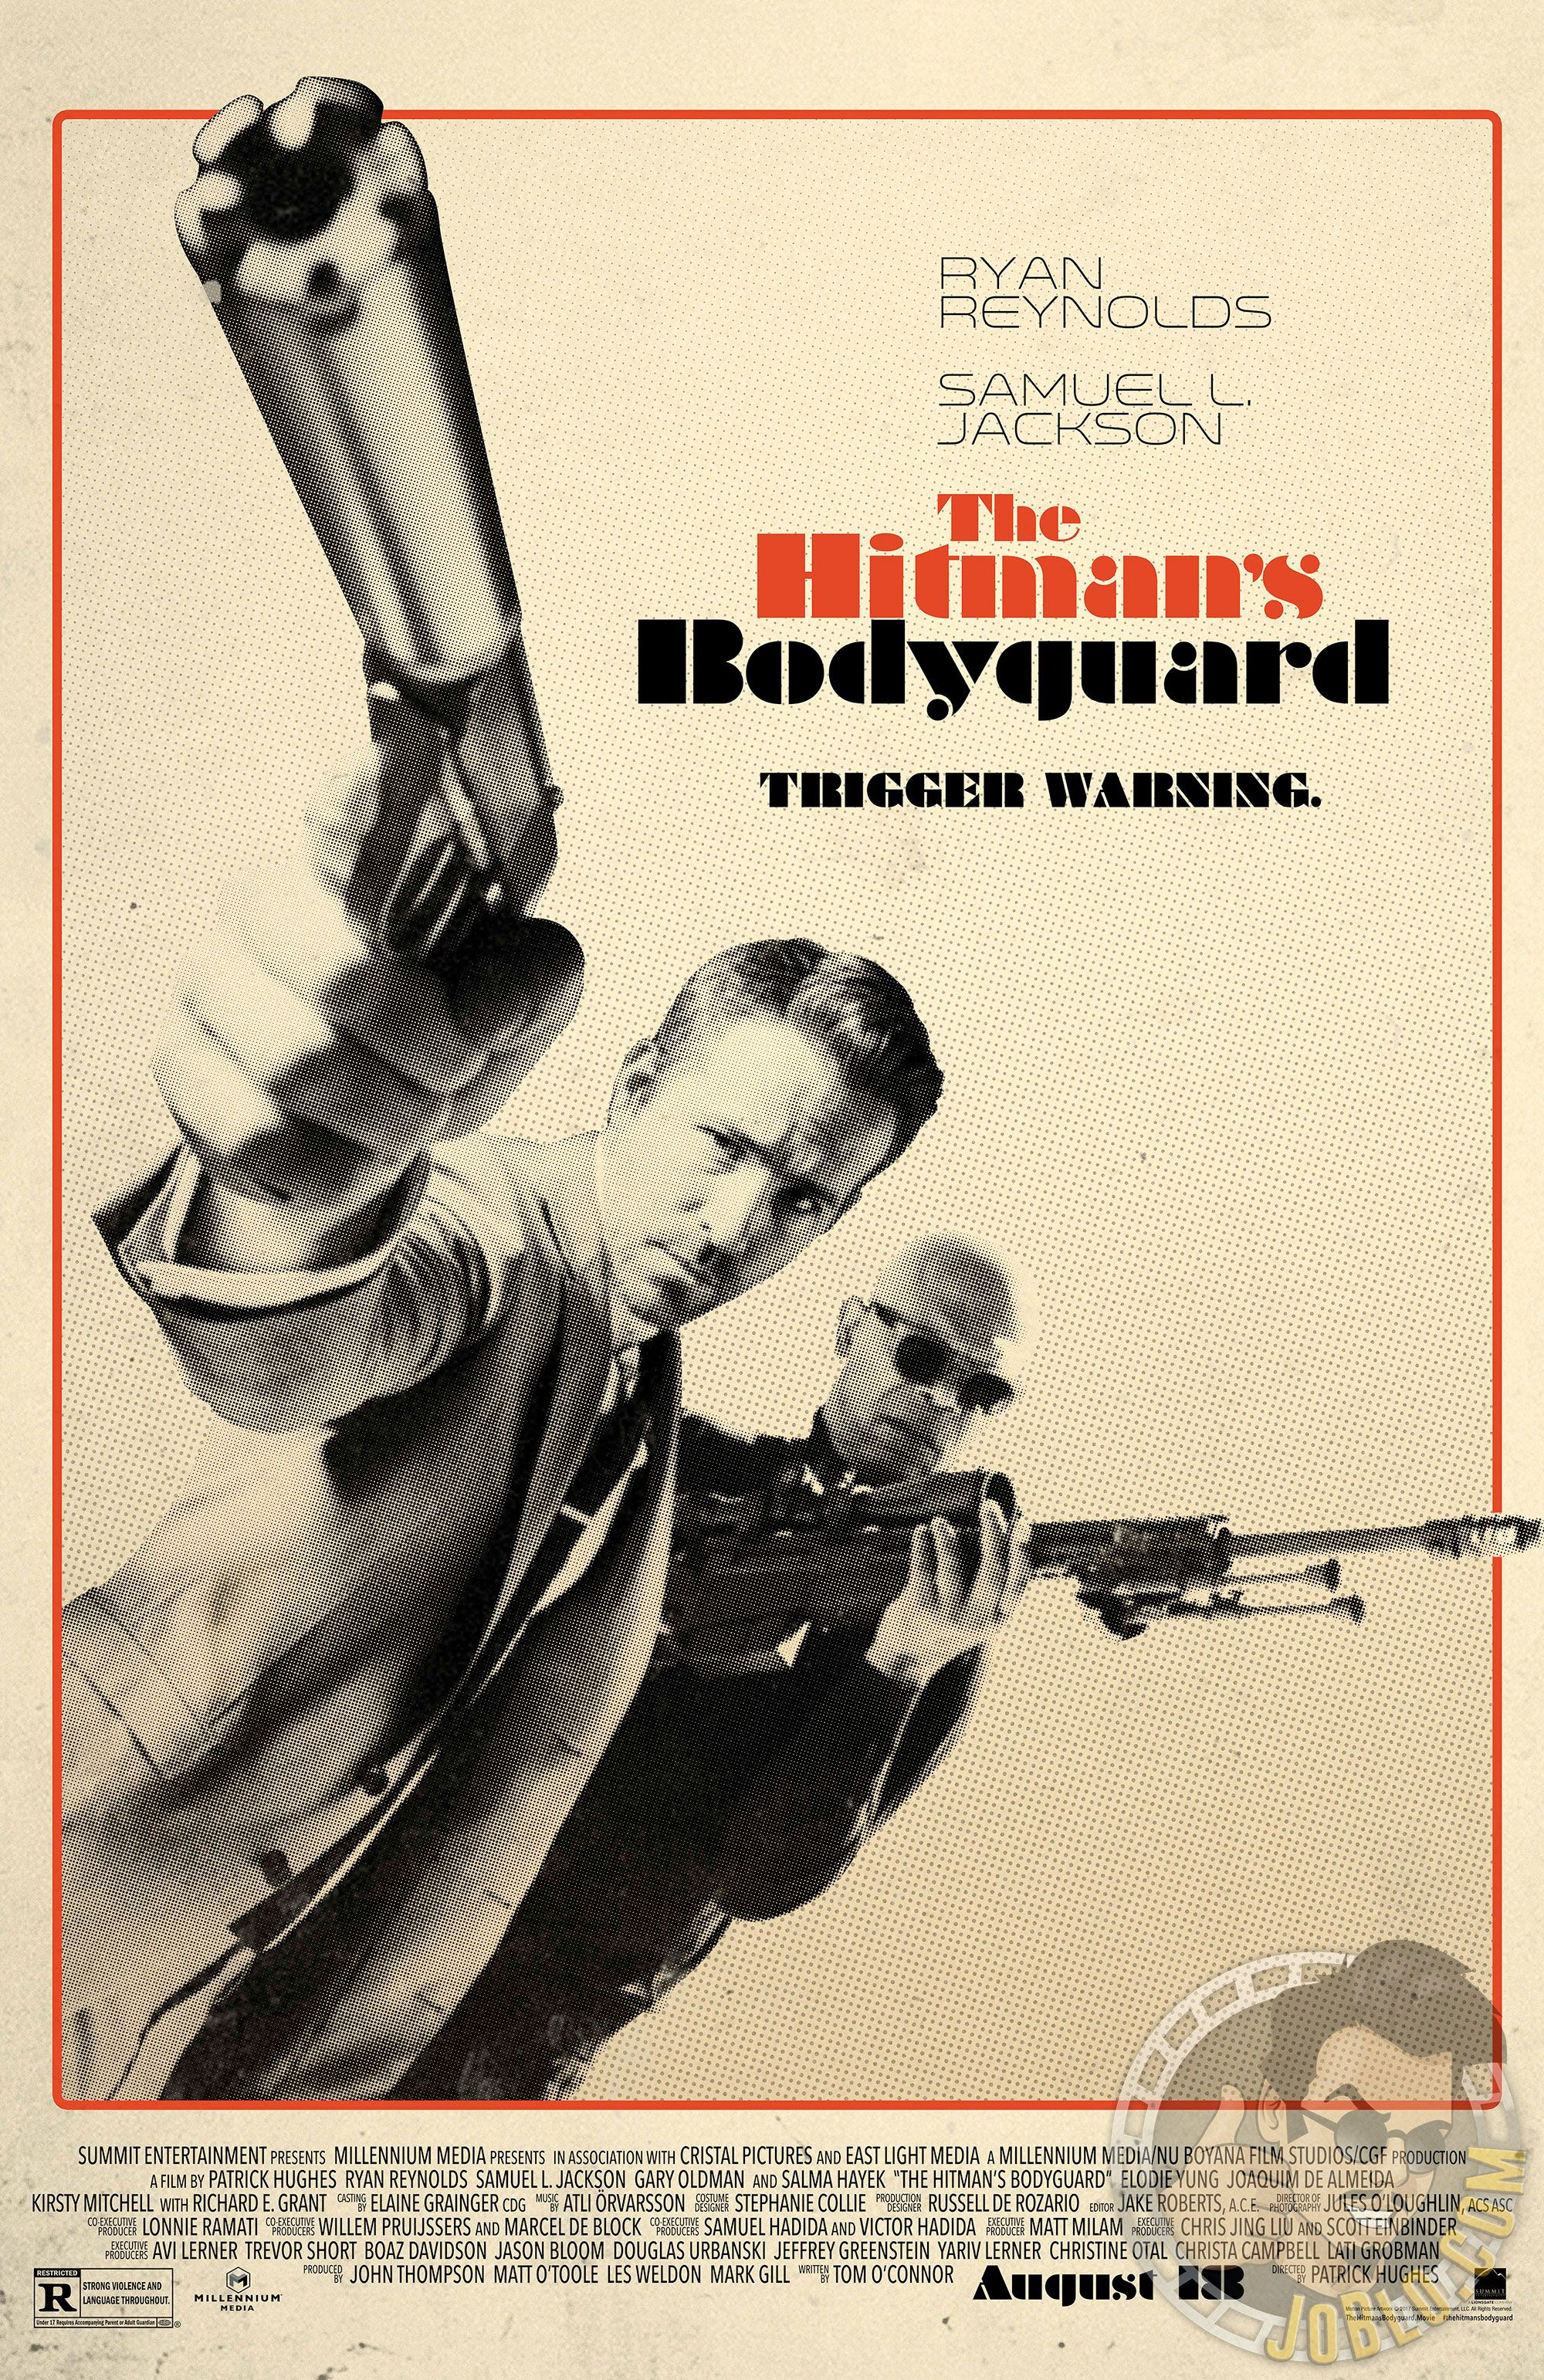 The Hitman's Bodyguard (2017) - Movie Posters | The ...